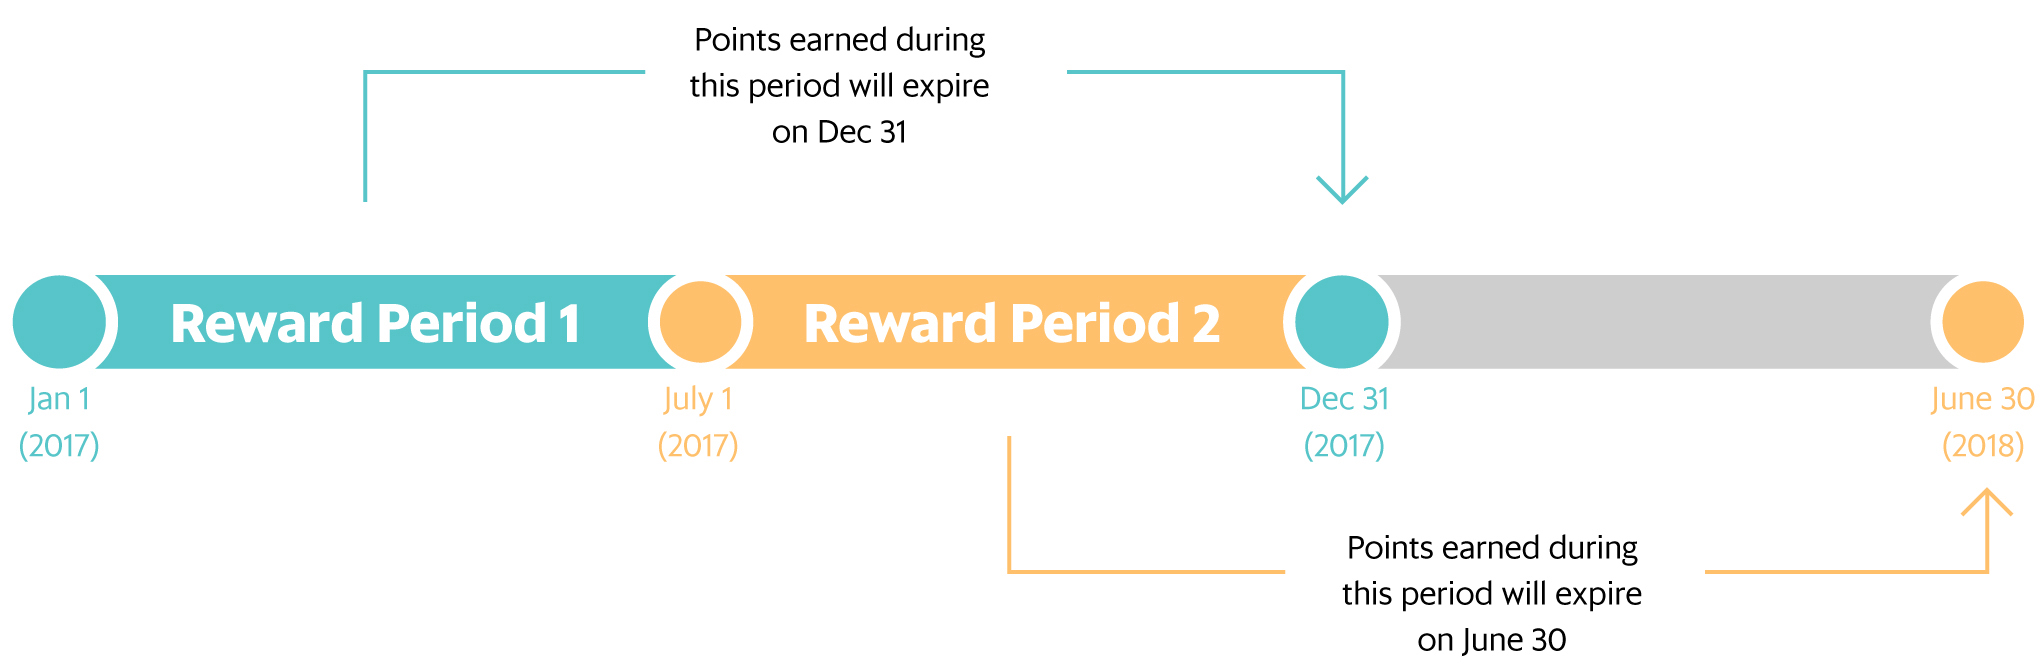 Rewards Periods